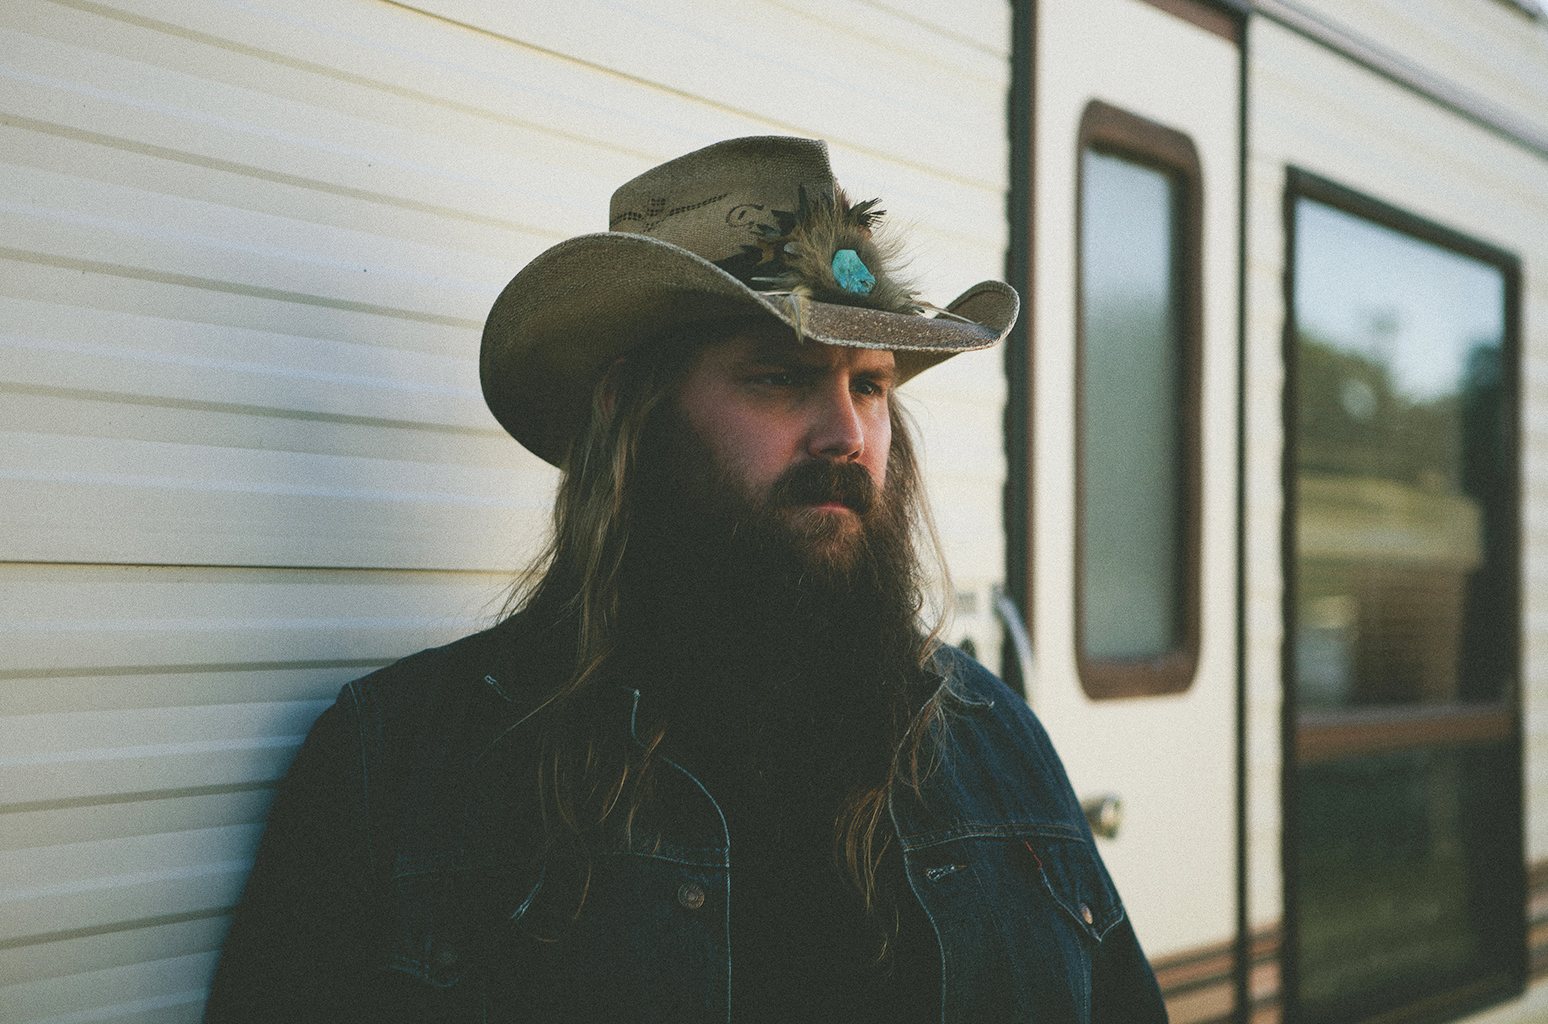 De 25 van 2017: 8 Chris Stapleton – From a Room, Vol. 1 en Vol. 2